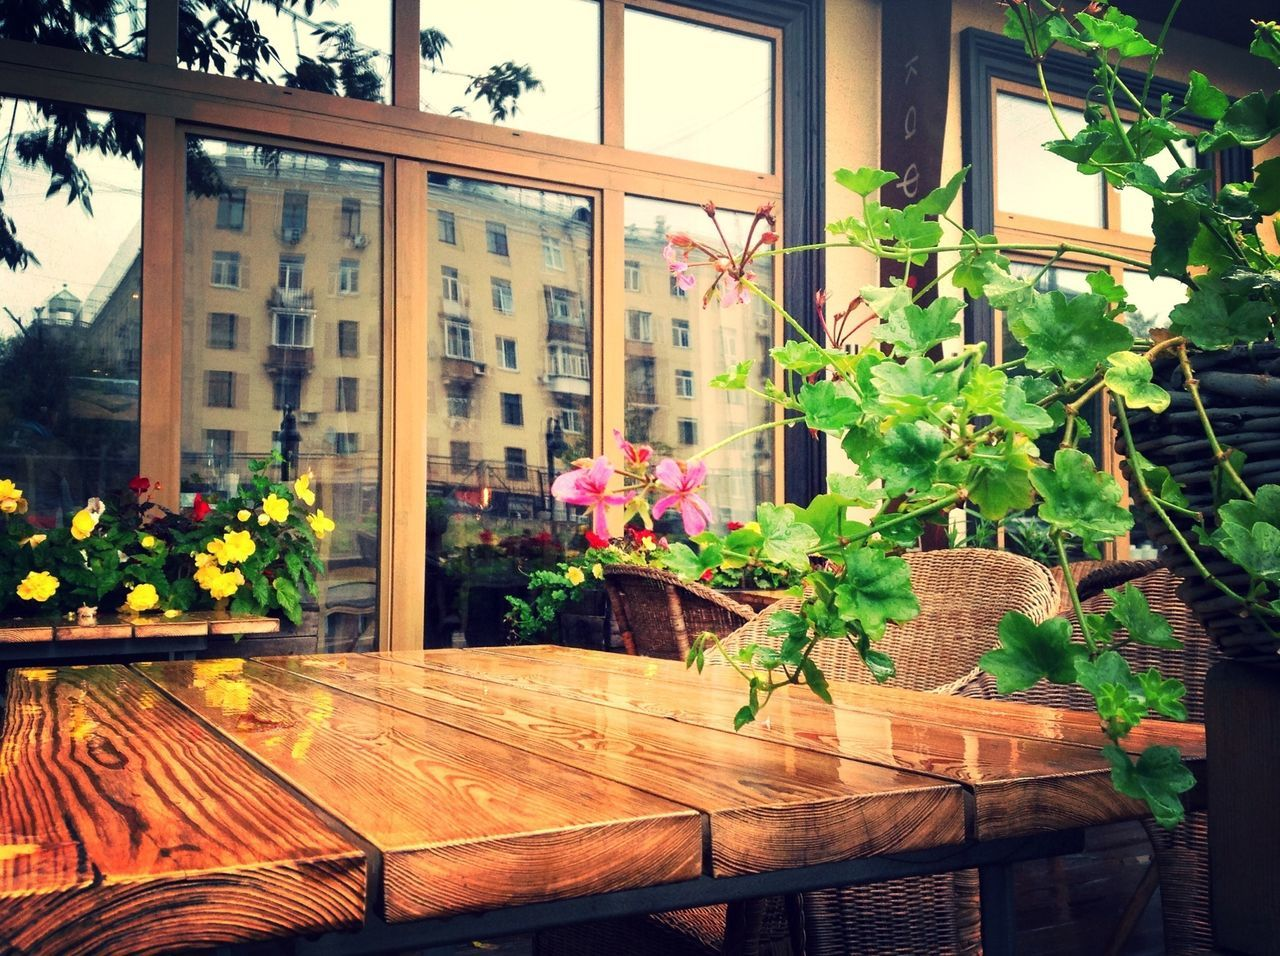 Wooden Table And Chair With Potted Plants In Restaurant